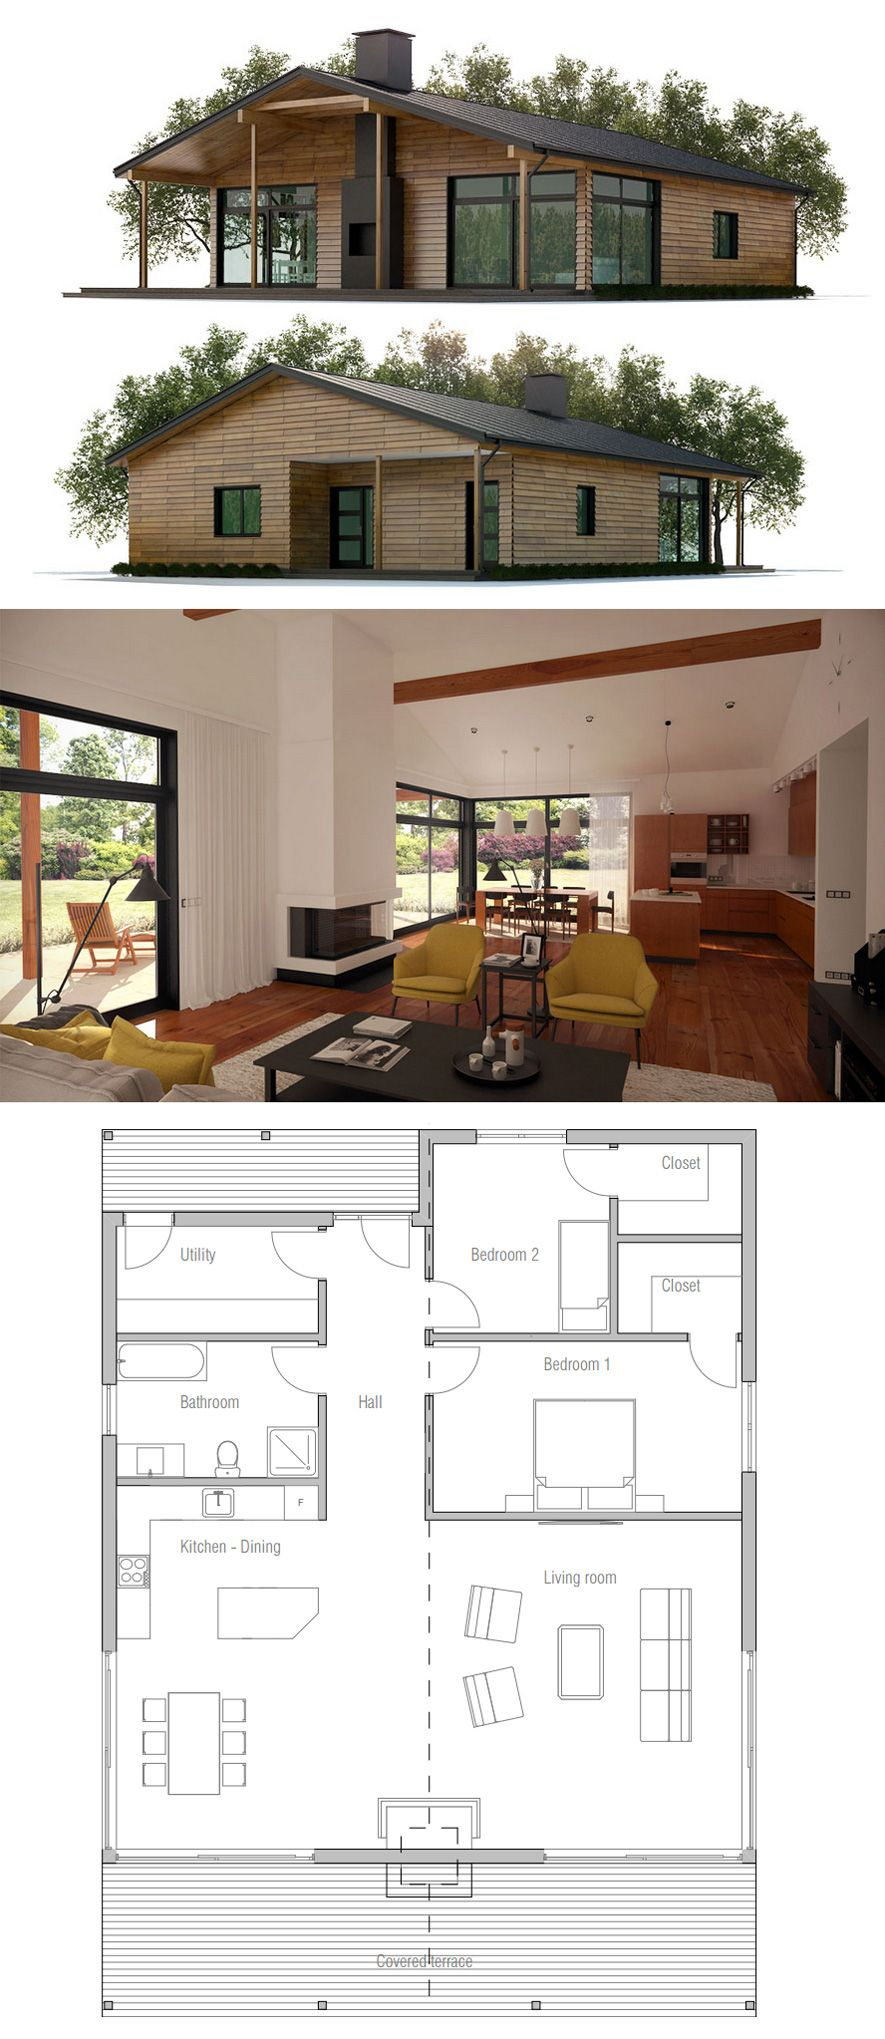 Small house plan small home ideas pinterest small house plans